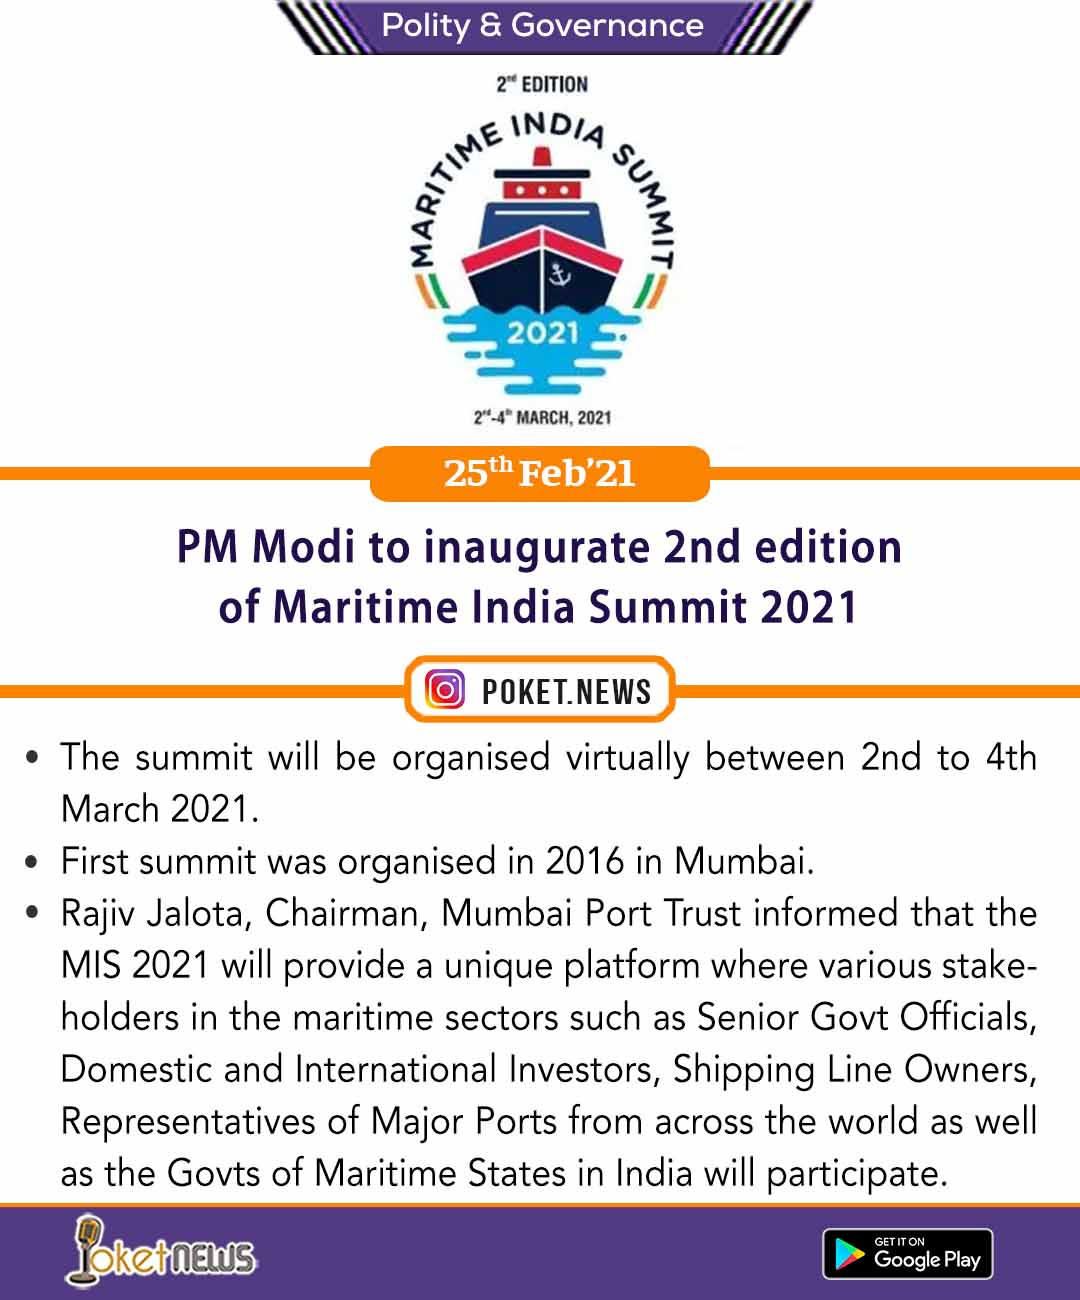 PM Modi to inaugurate 2nd edition of Maritime India Summit 2021